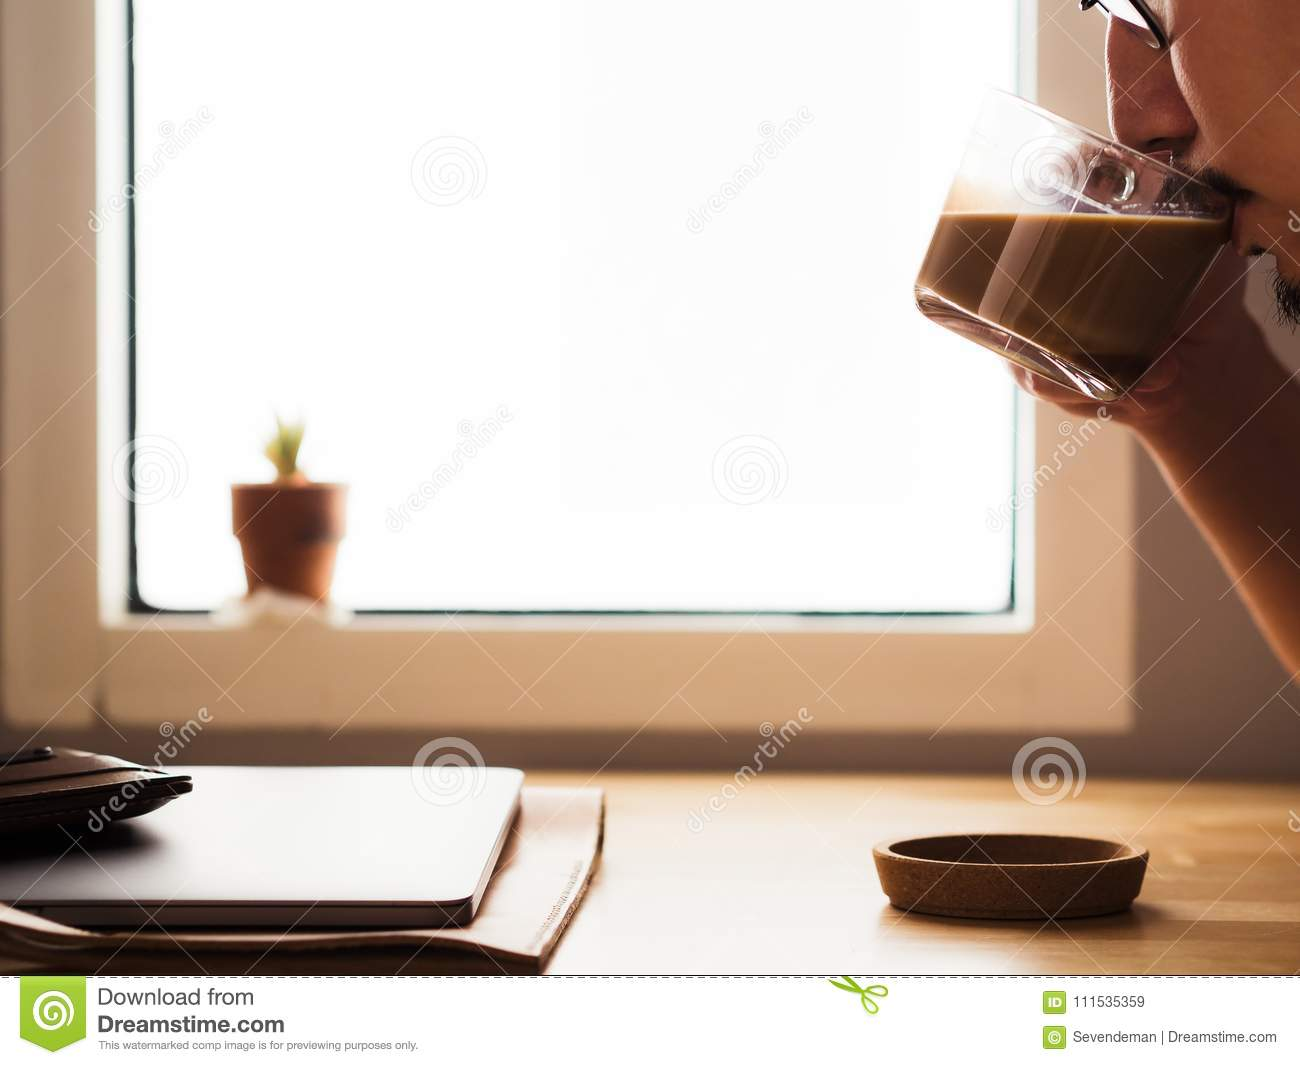 Drinking coffee on workspace desk with laptop by the window light.